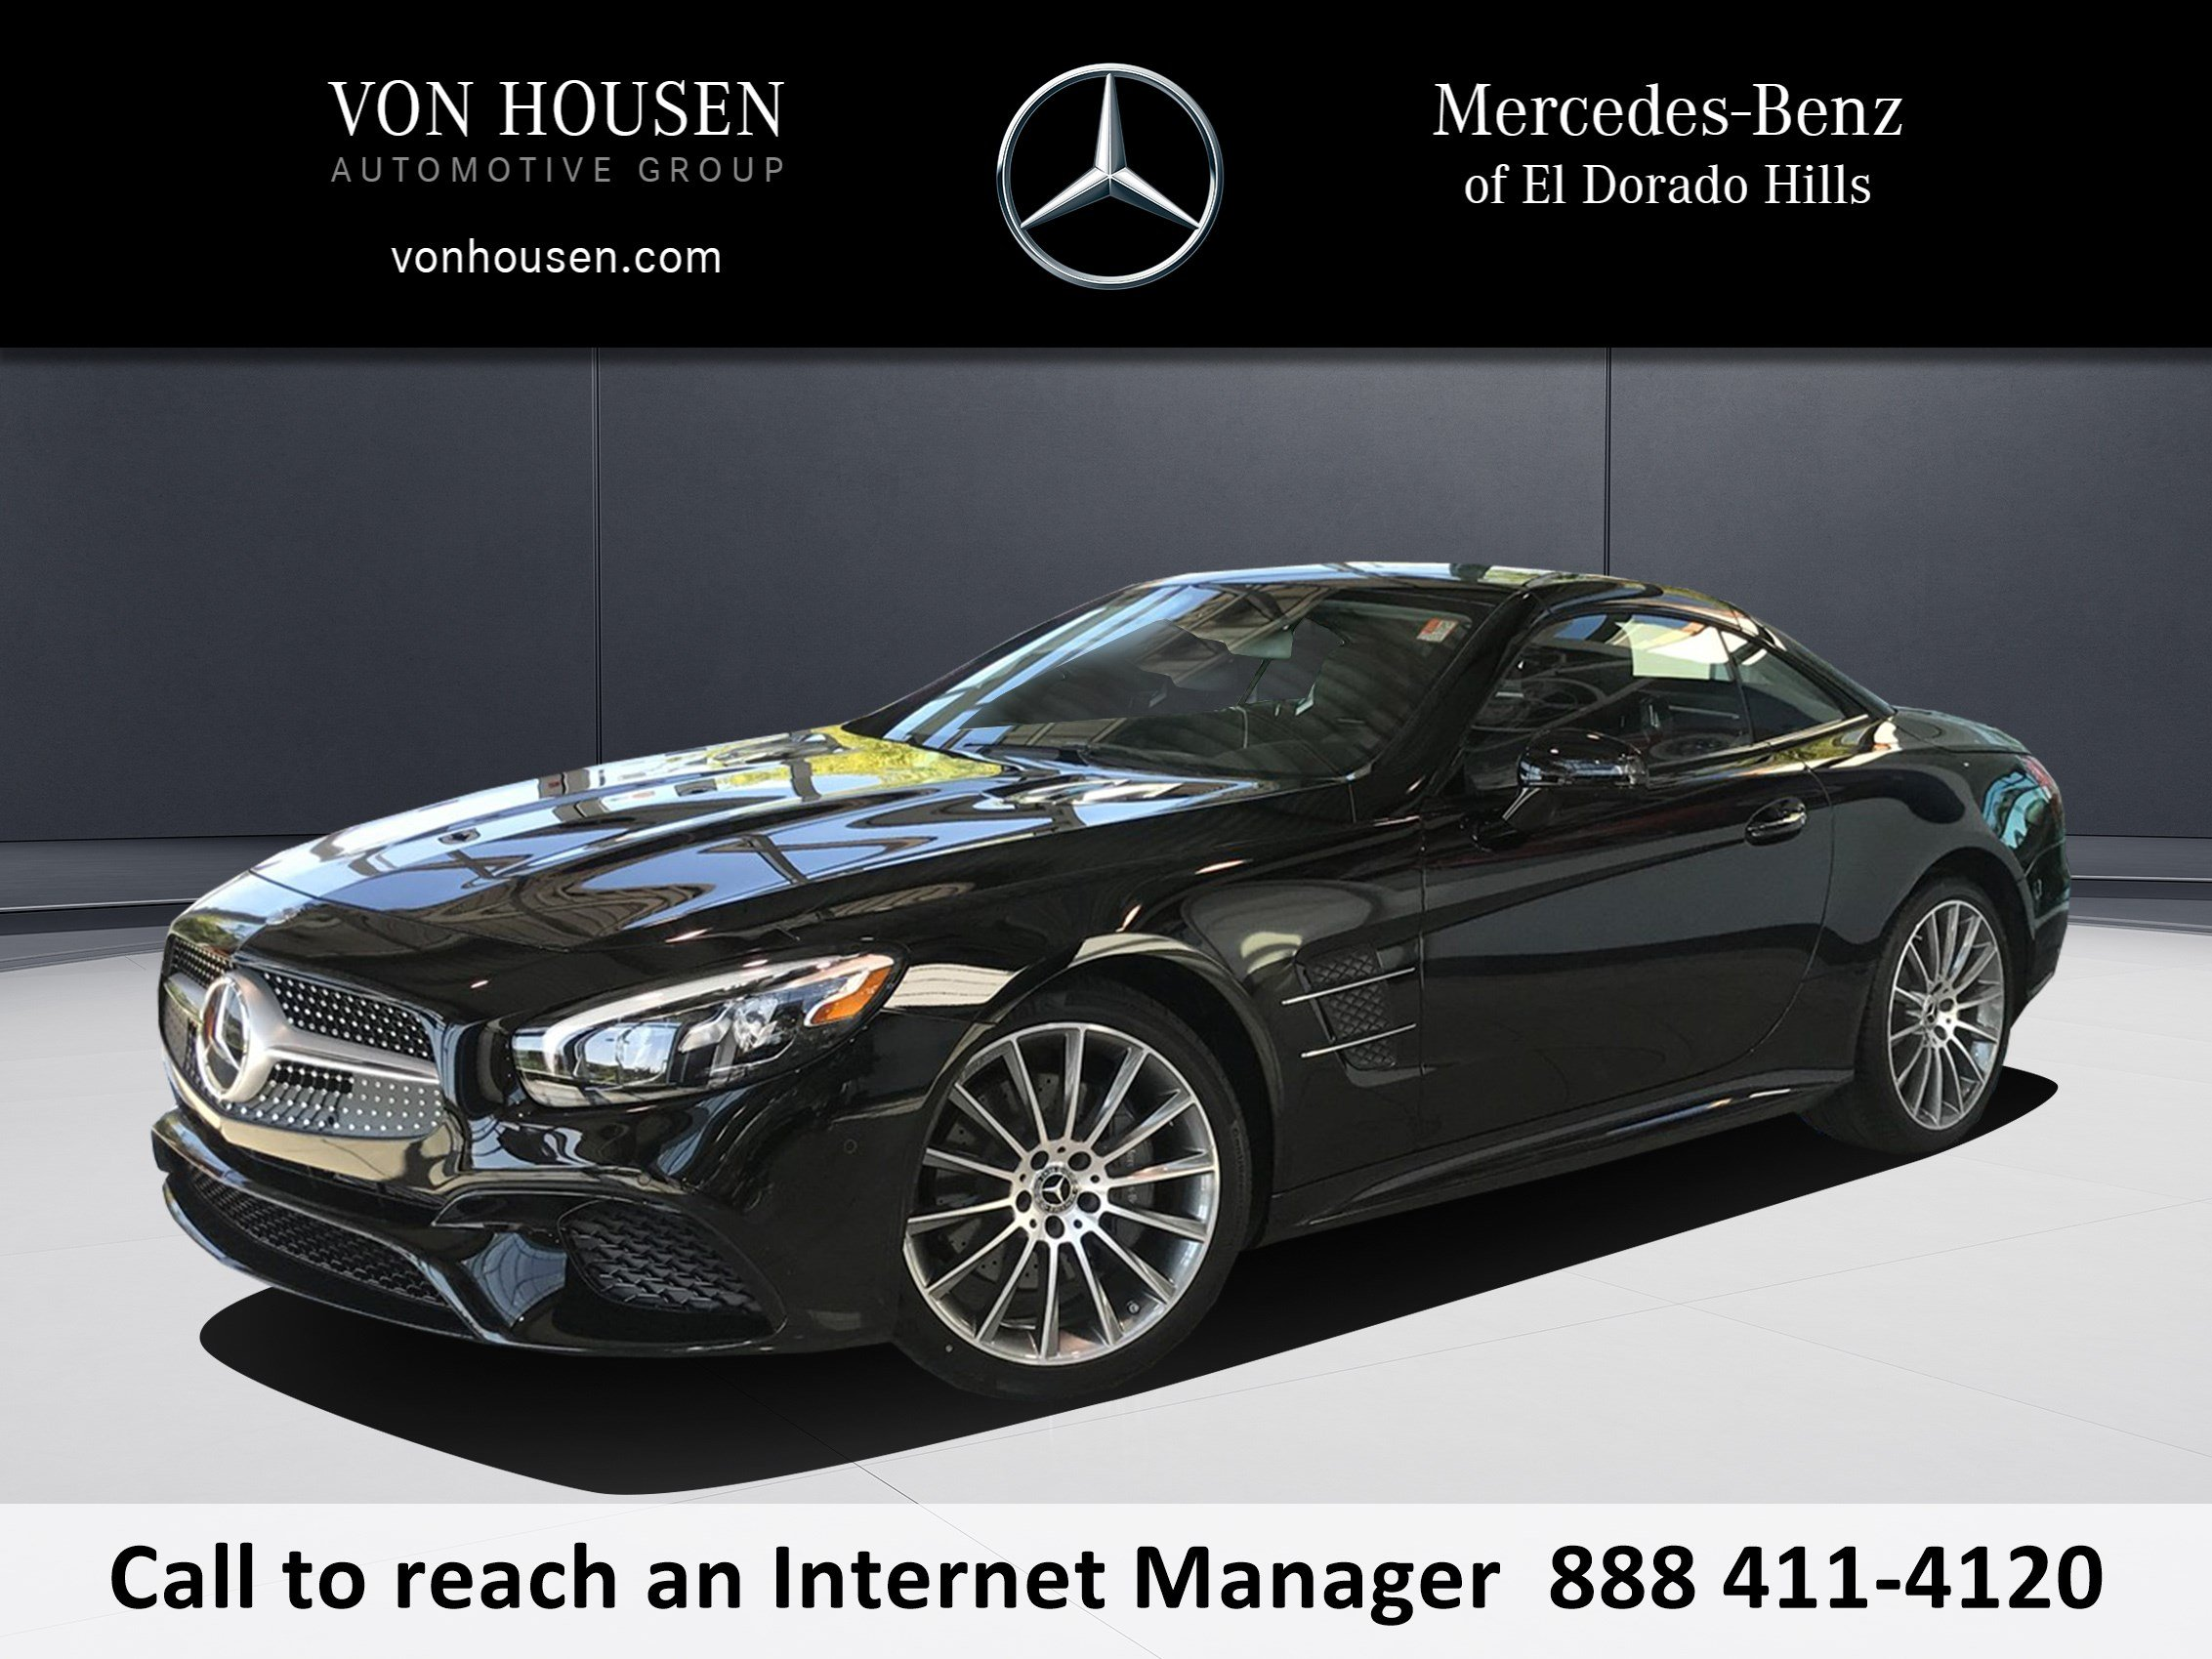 New 2018 Mercedes Benz SL SL 550 ROADSTER in El Dorado Hills E